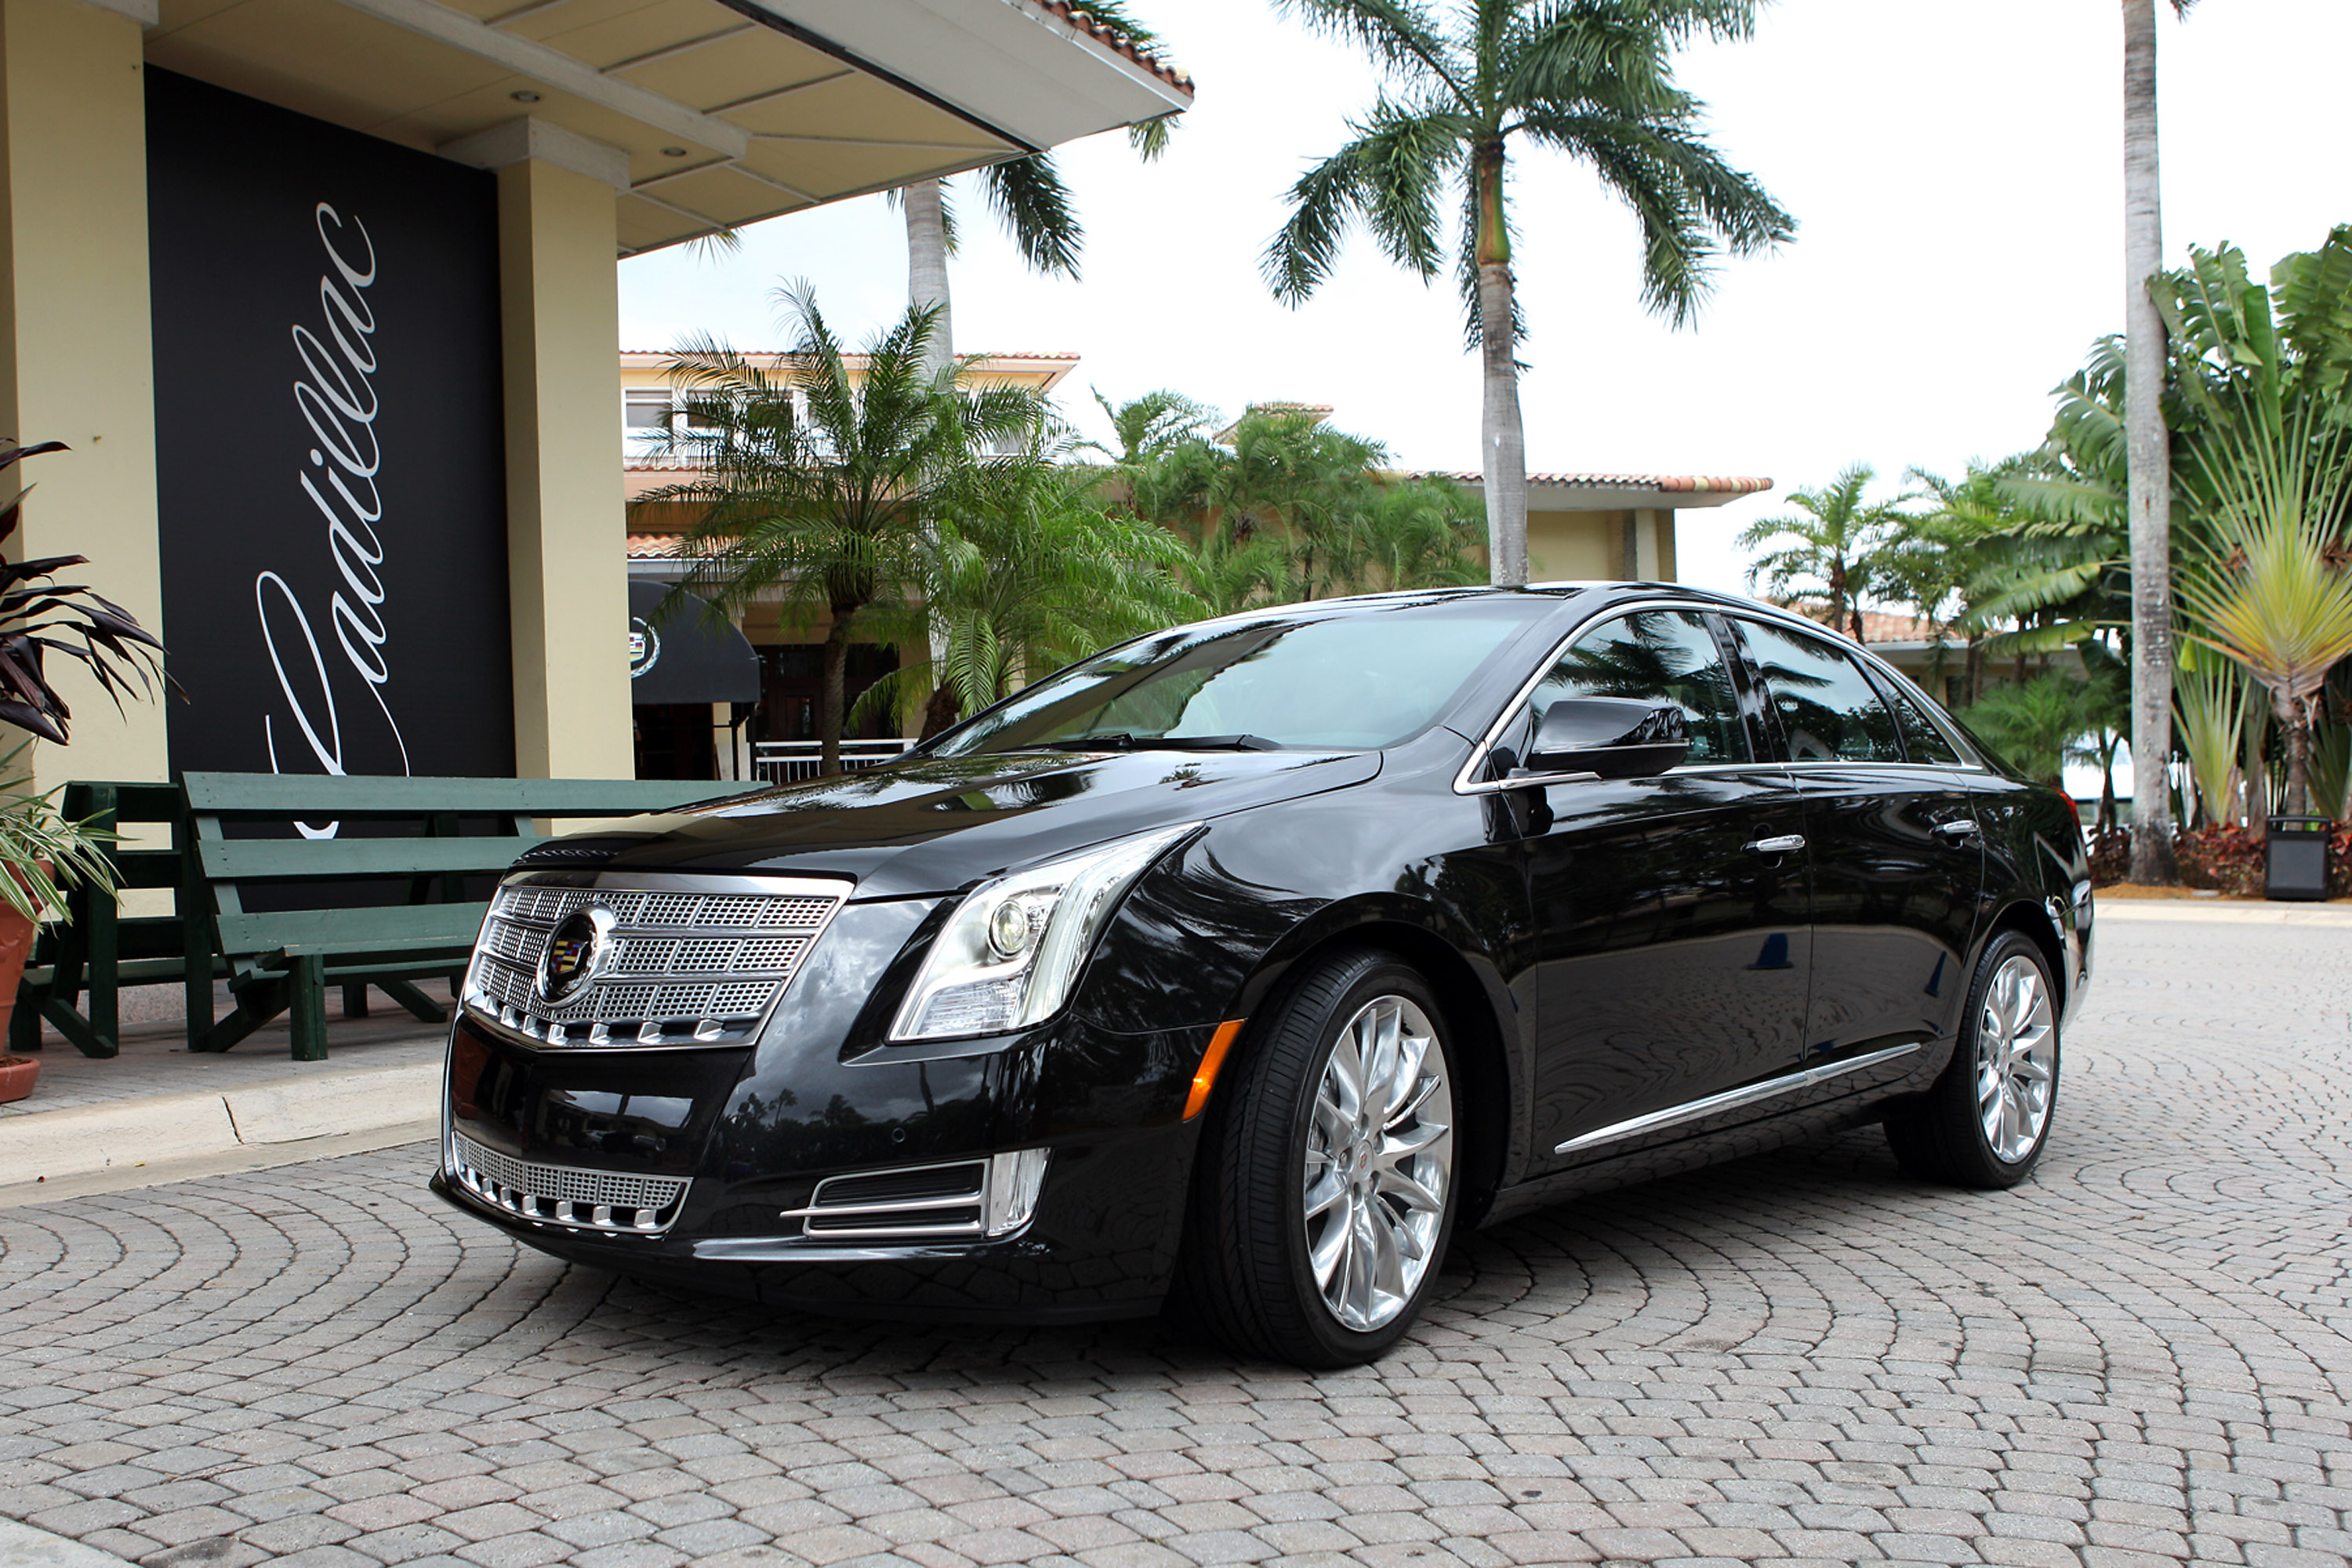 2013 Cadillac Xts Offers Country Club Credibility